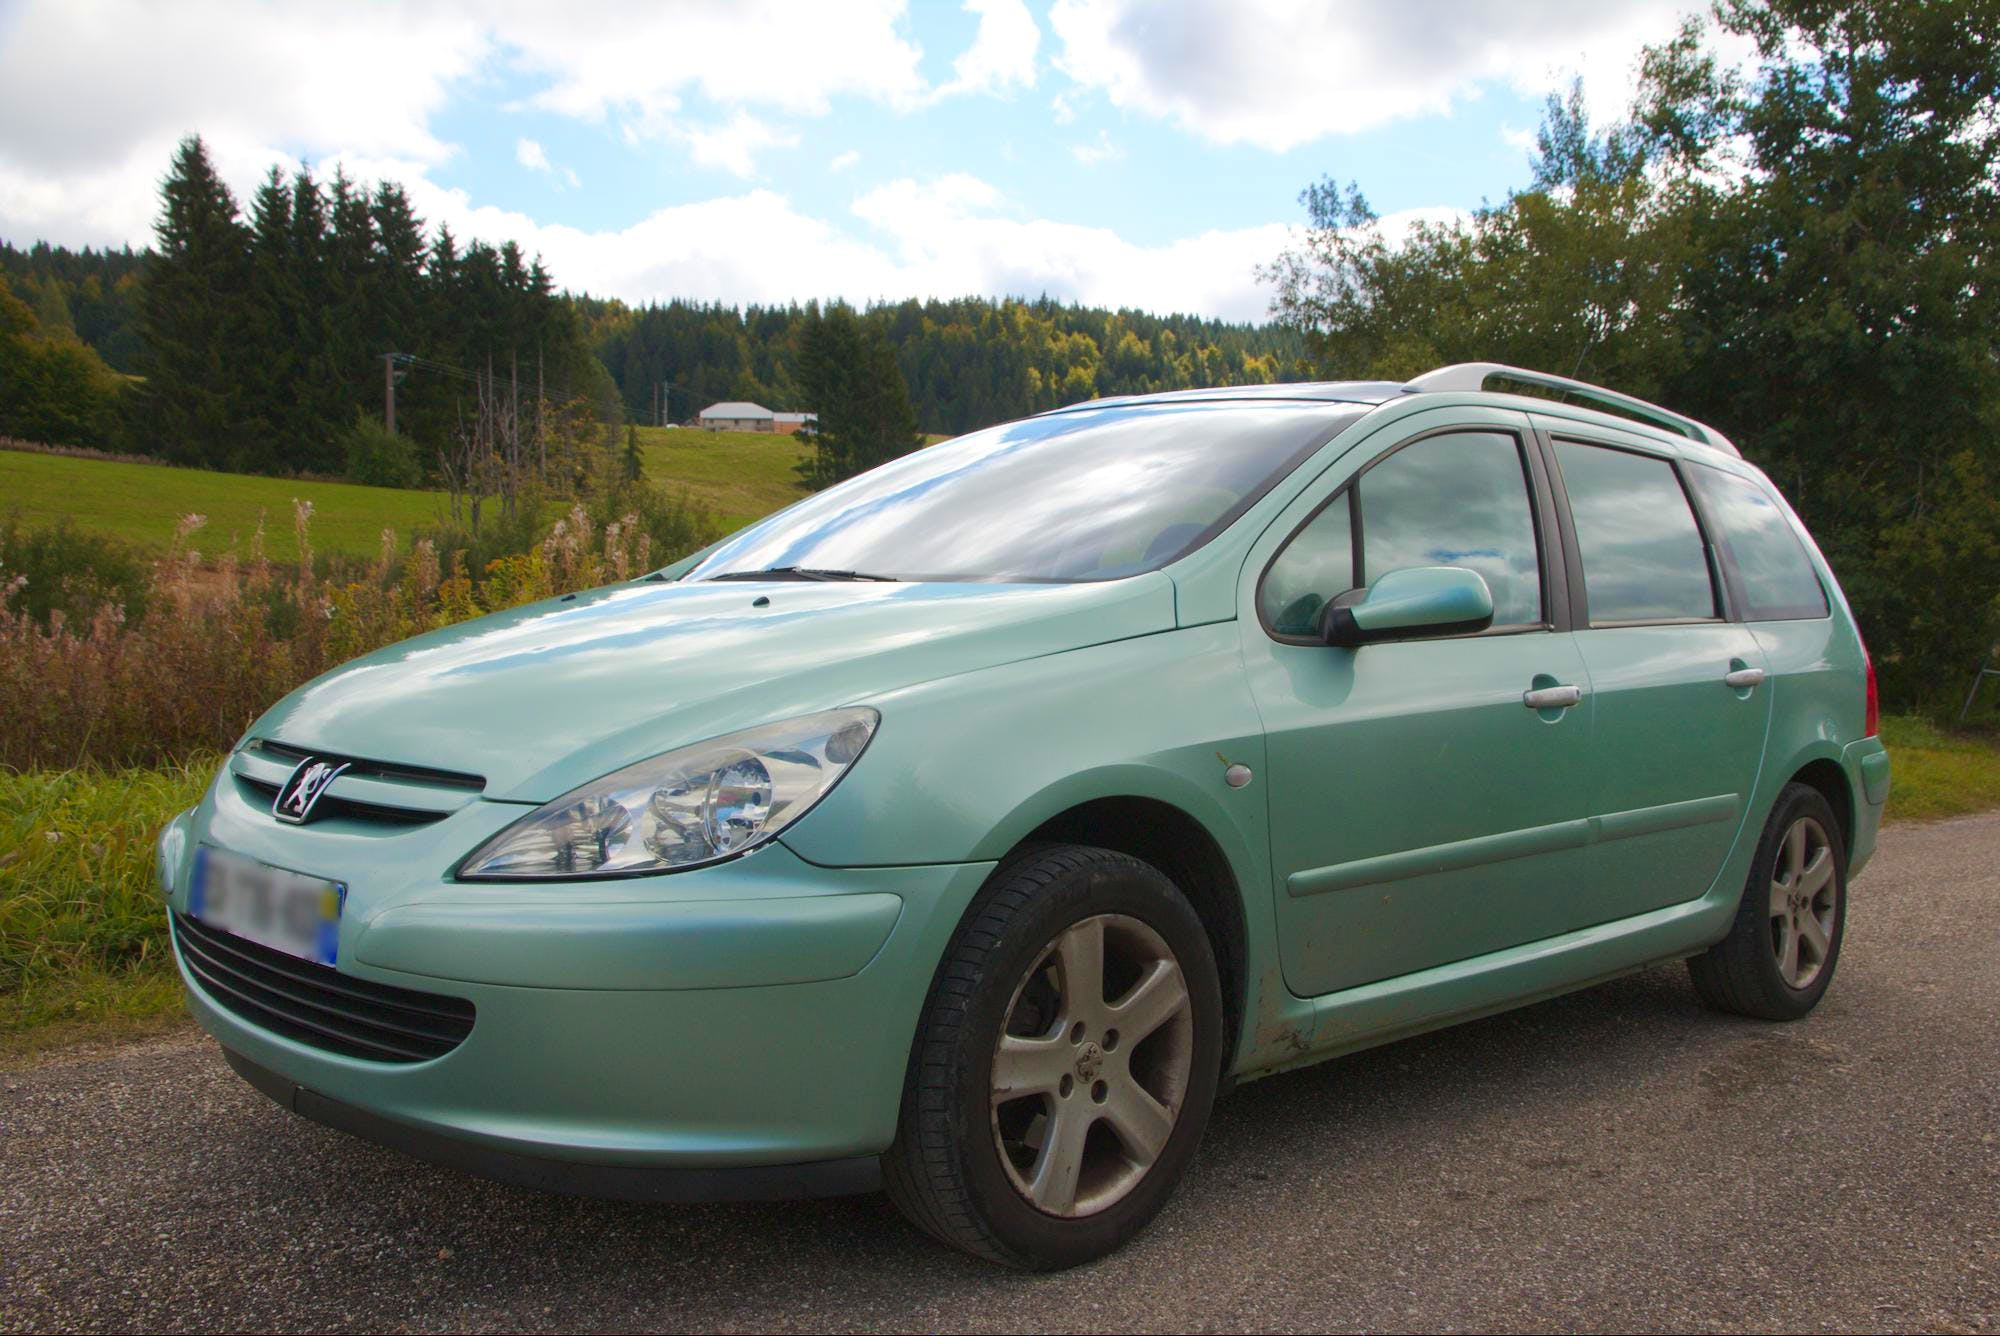 Peugeot 307 SW 2.0 HDi toit panoramique, 2002, Diesel